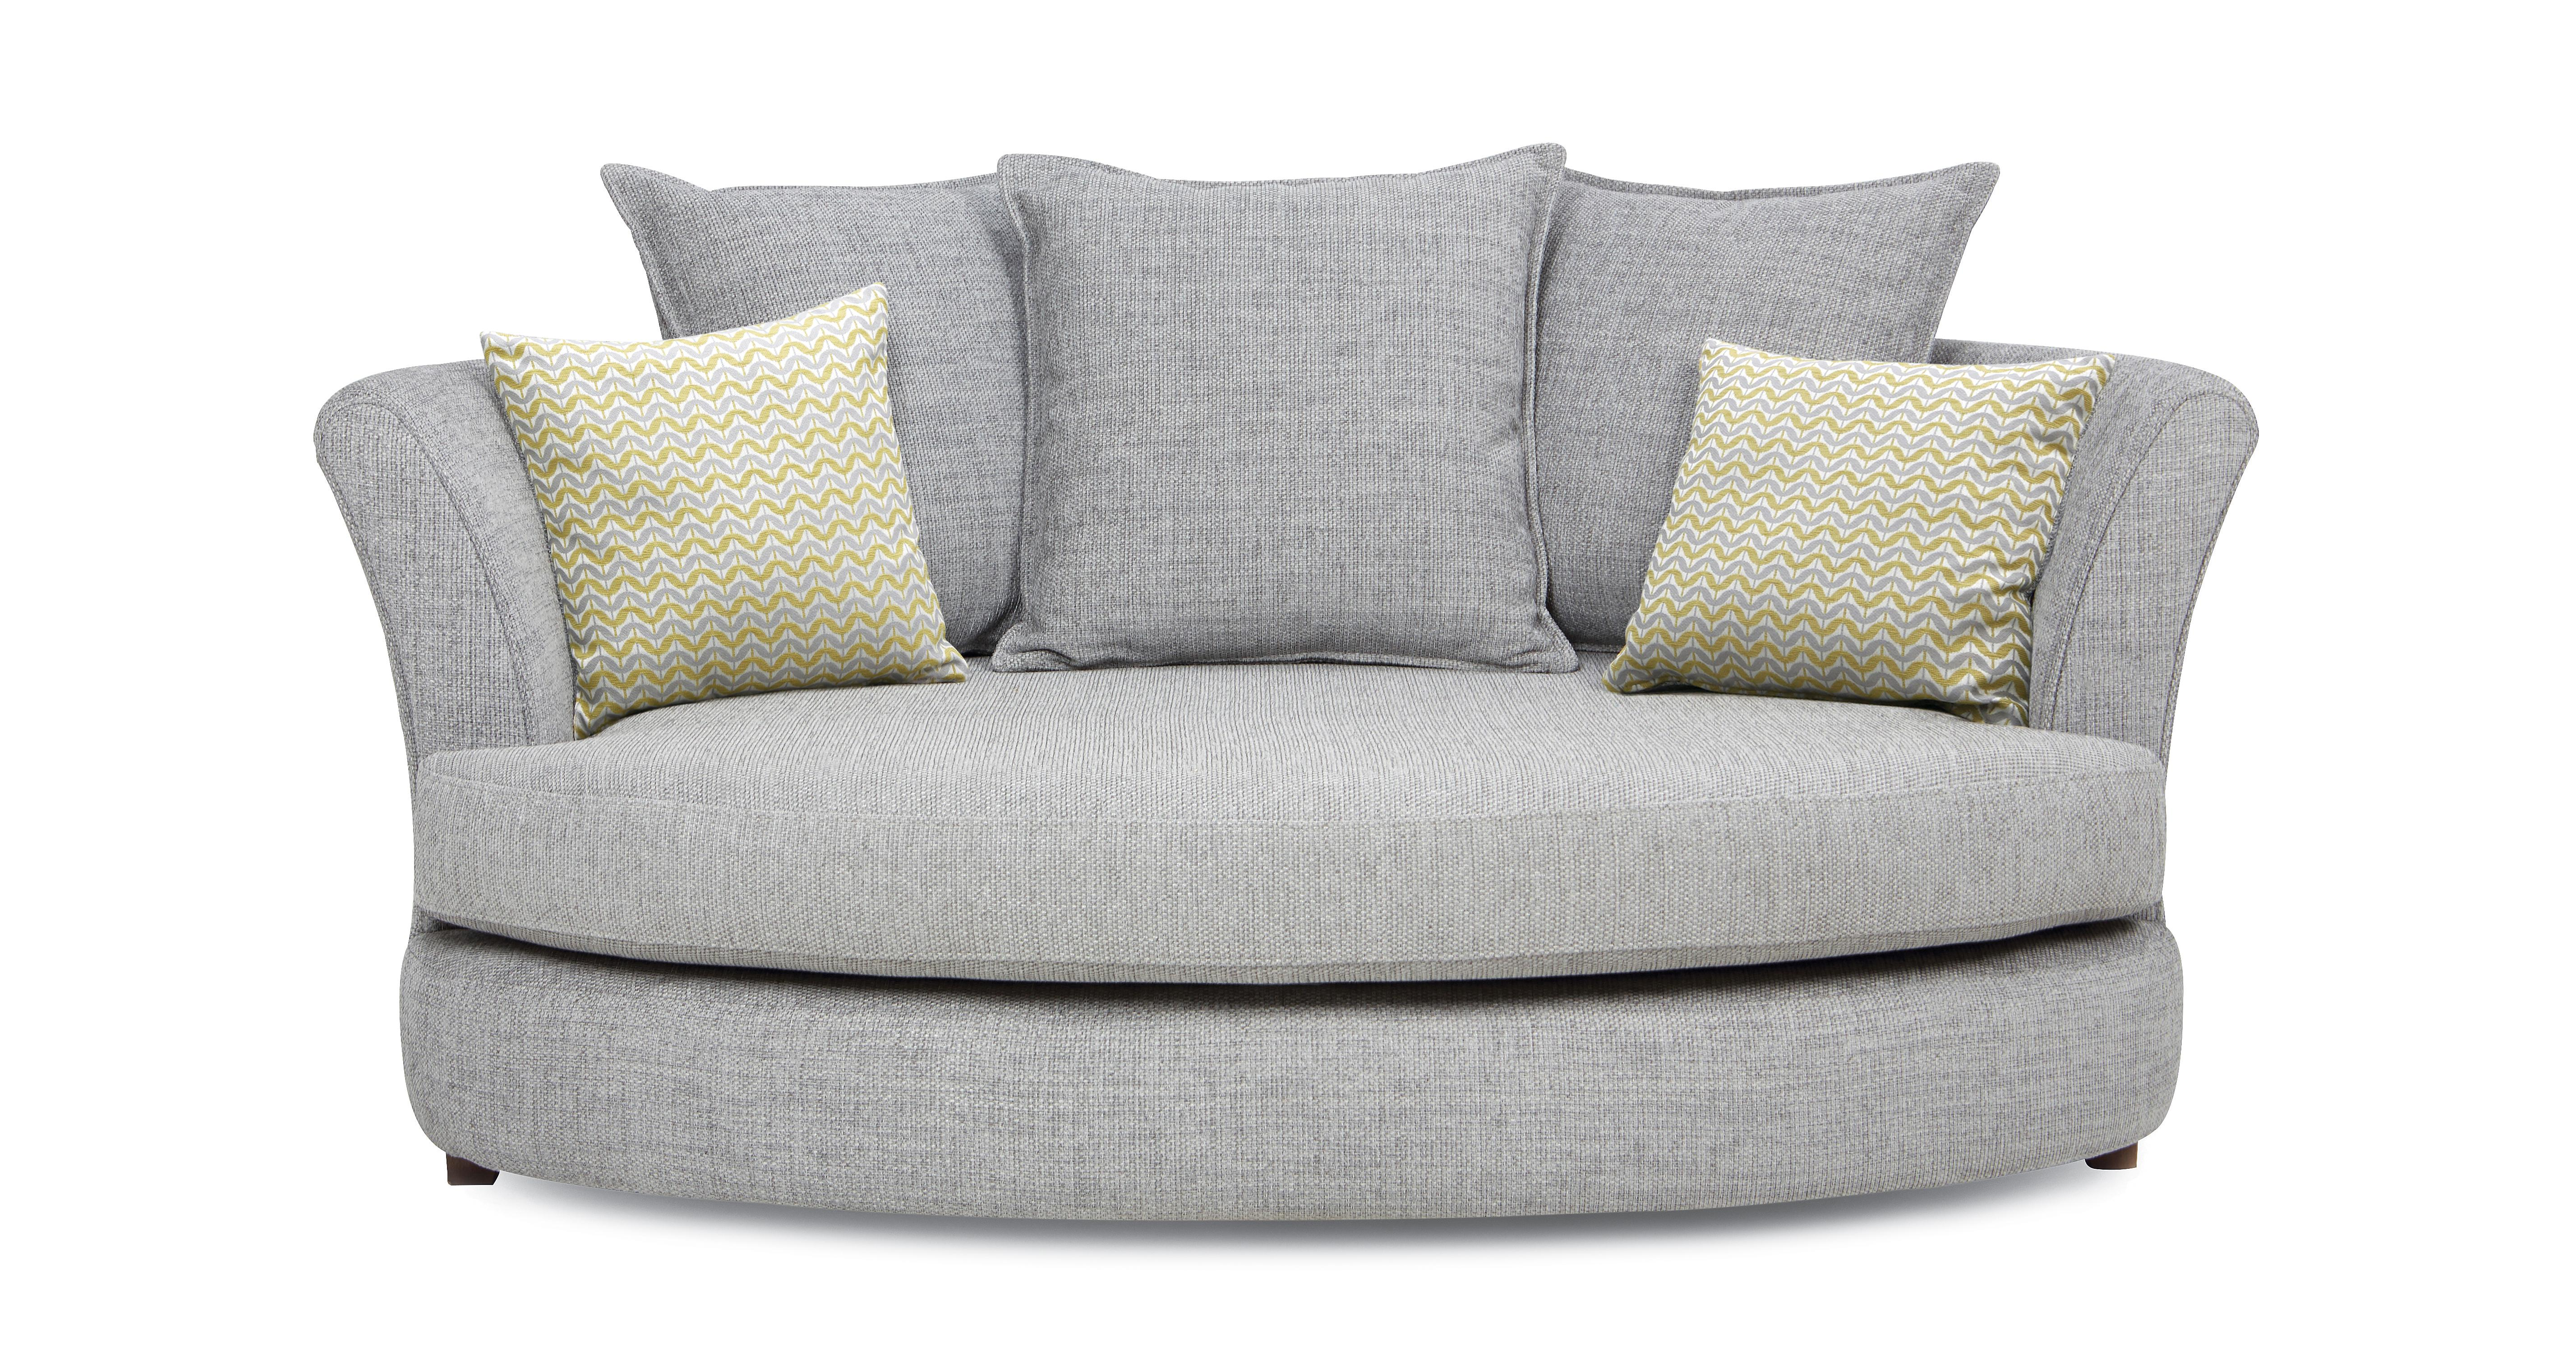 how to wash dfs sofa cushions factory in south wales dovedale cuddler burlington  